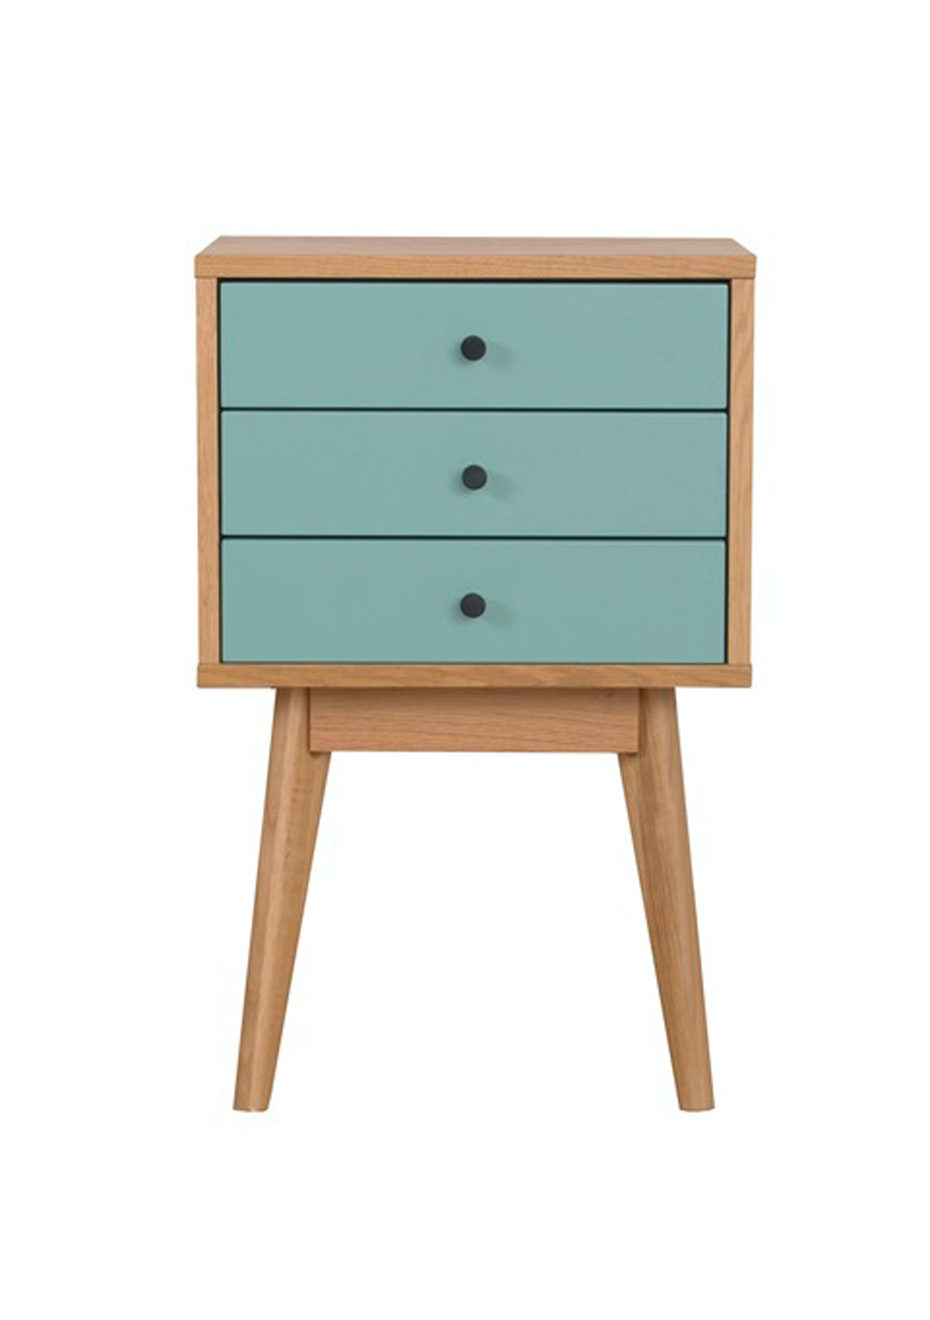 Furniture By Design - Radius 3 Tower- Turquoise and Oak